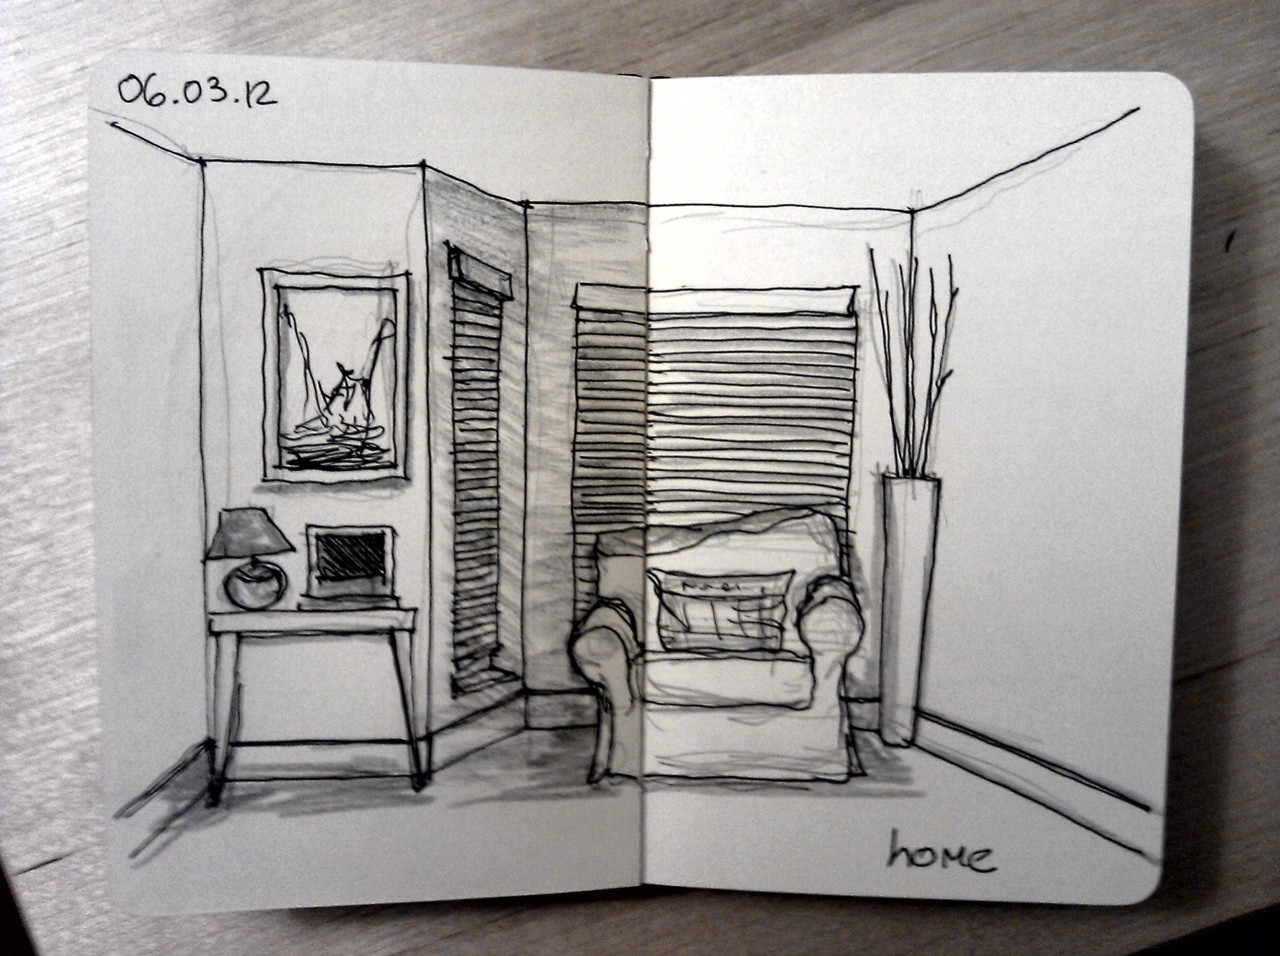 365 drawings later … day 35 … home (well for a little while more, I'll miss it)